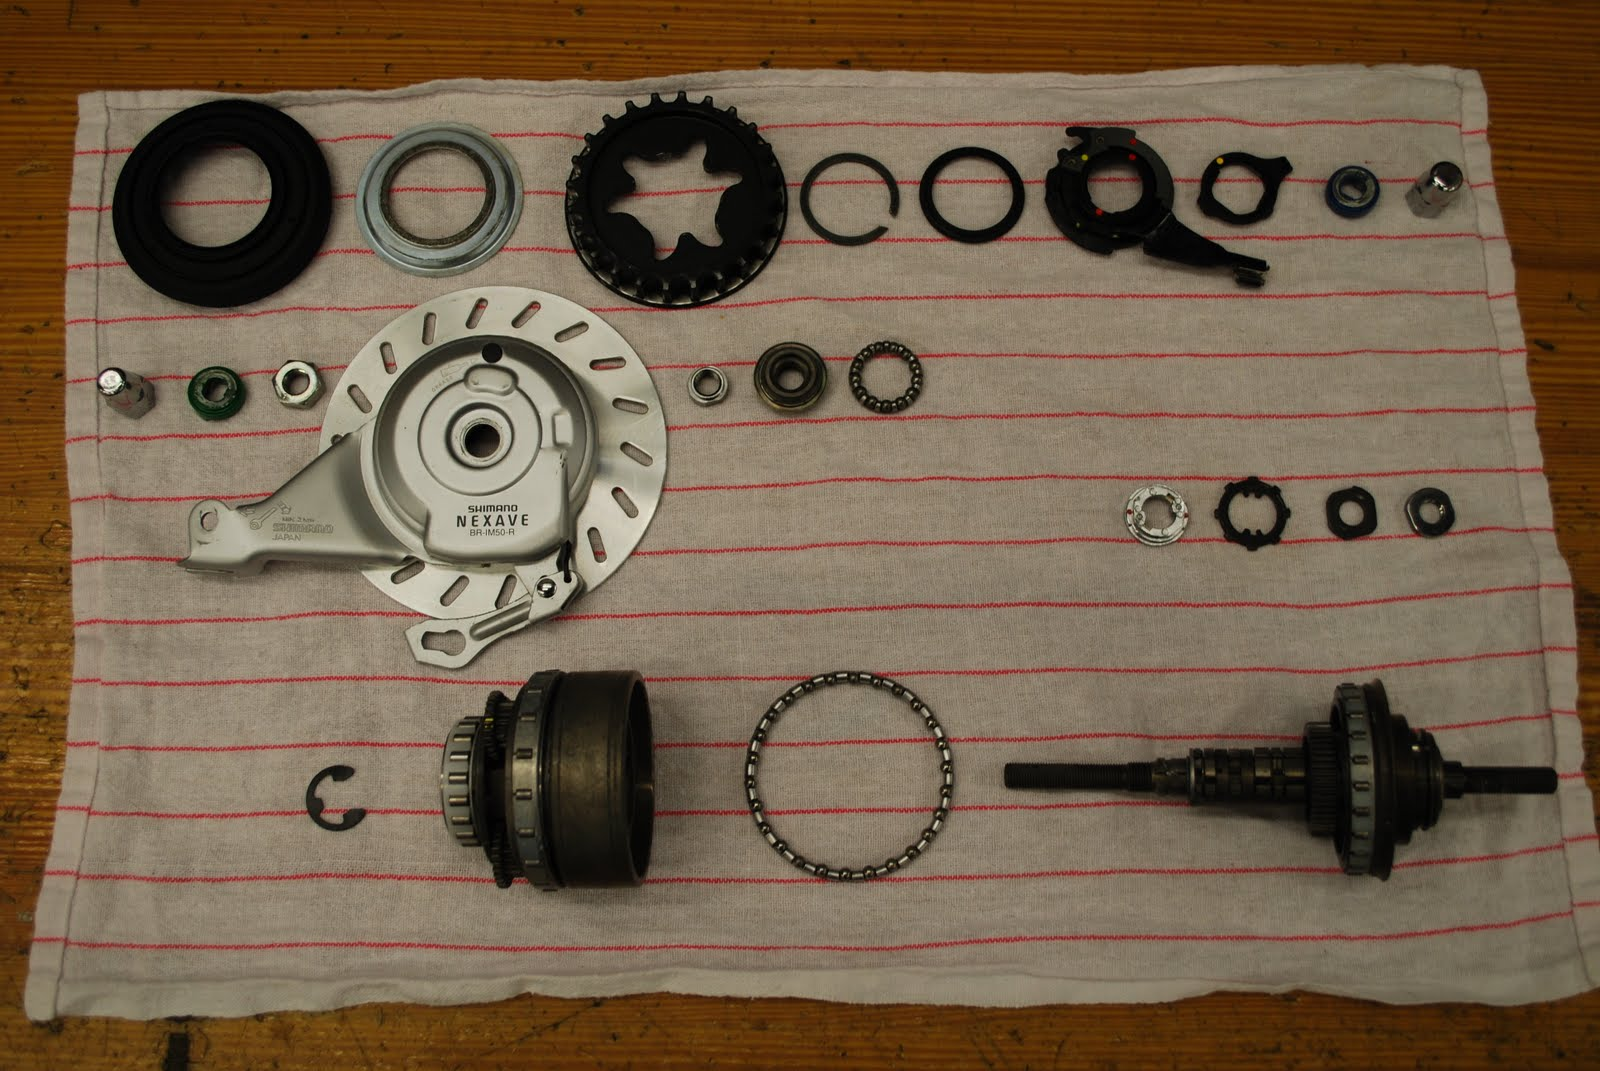 How To Freewheel Bike Shop Minneapolis Twin Cities St Paul Exploded Diagram Of Drum Brake Here Is An View After The Parts Are All Cleaned